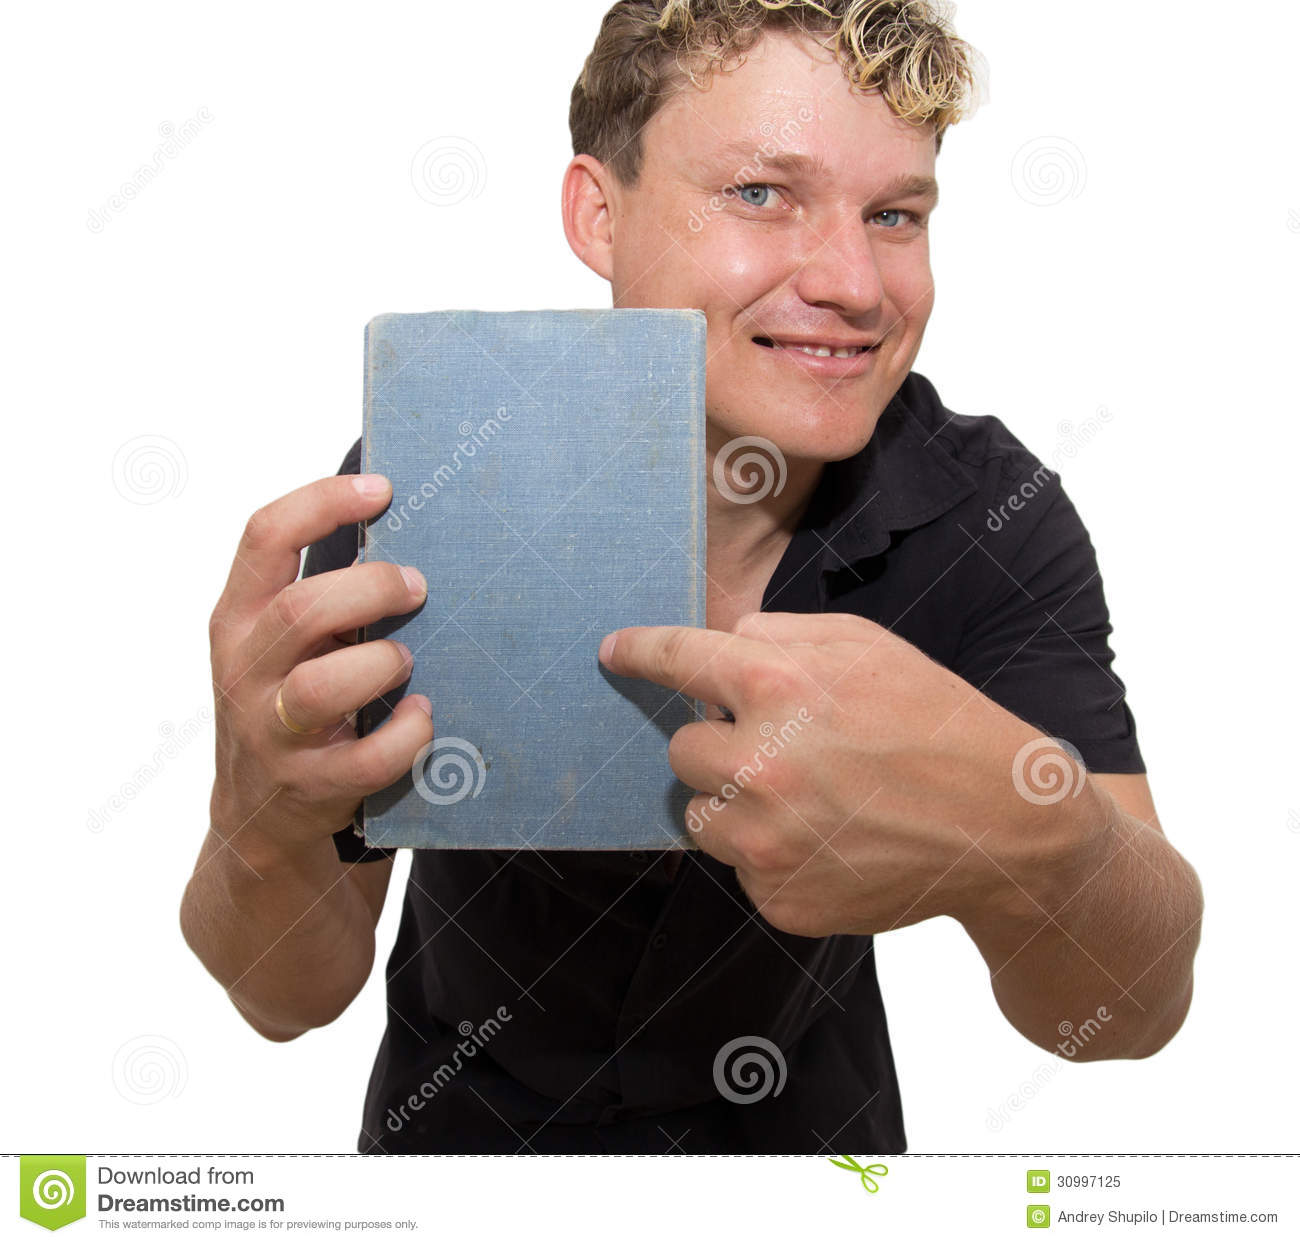 Man Holding A Book Stock Image. Image Of Handsome, Pretty